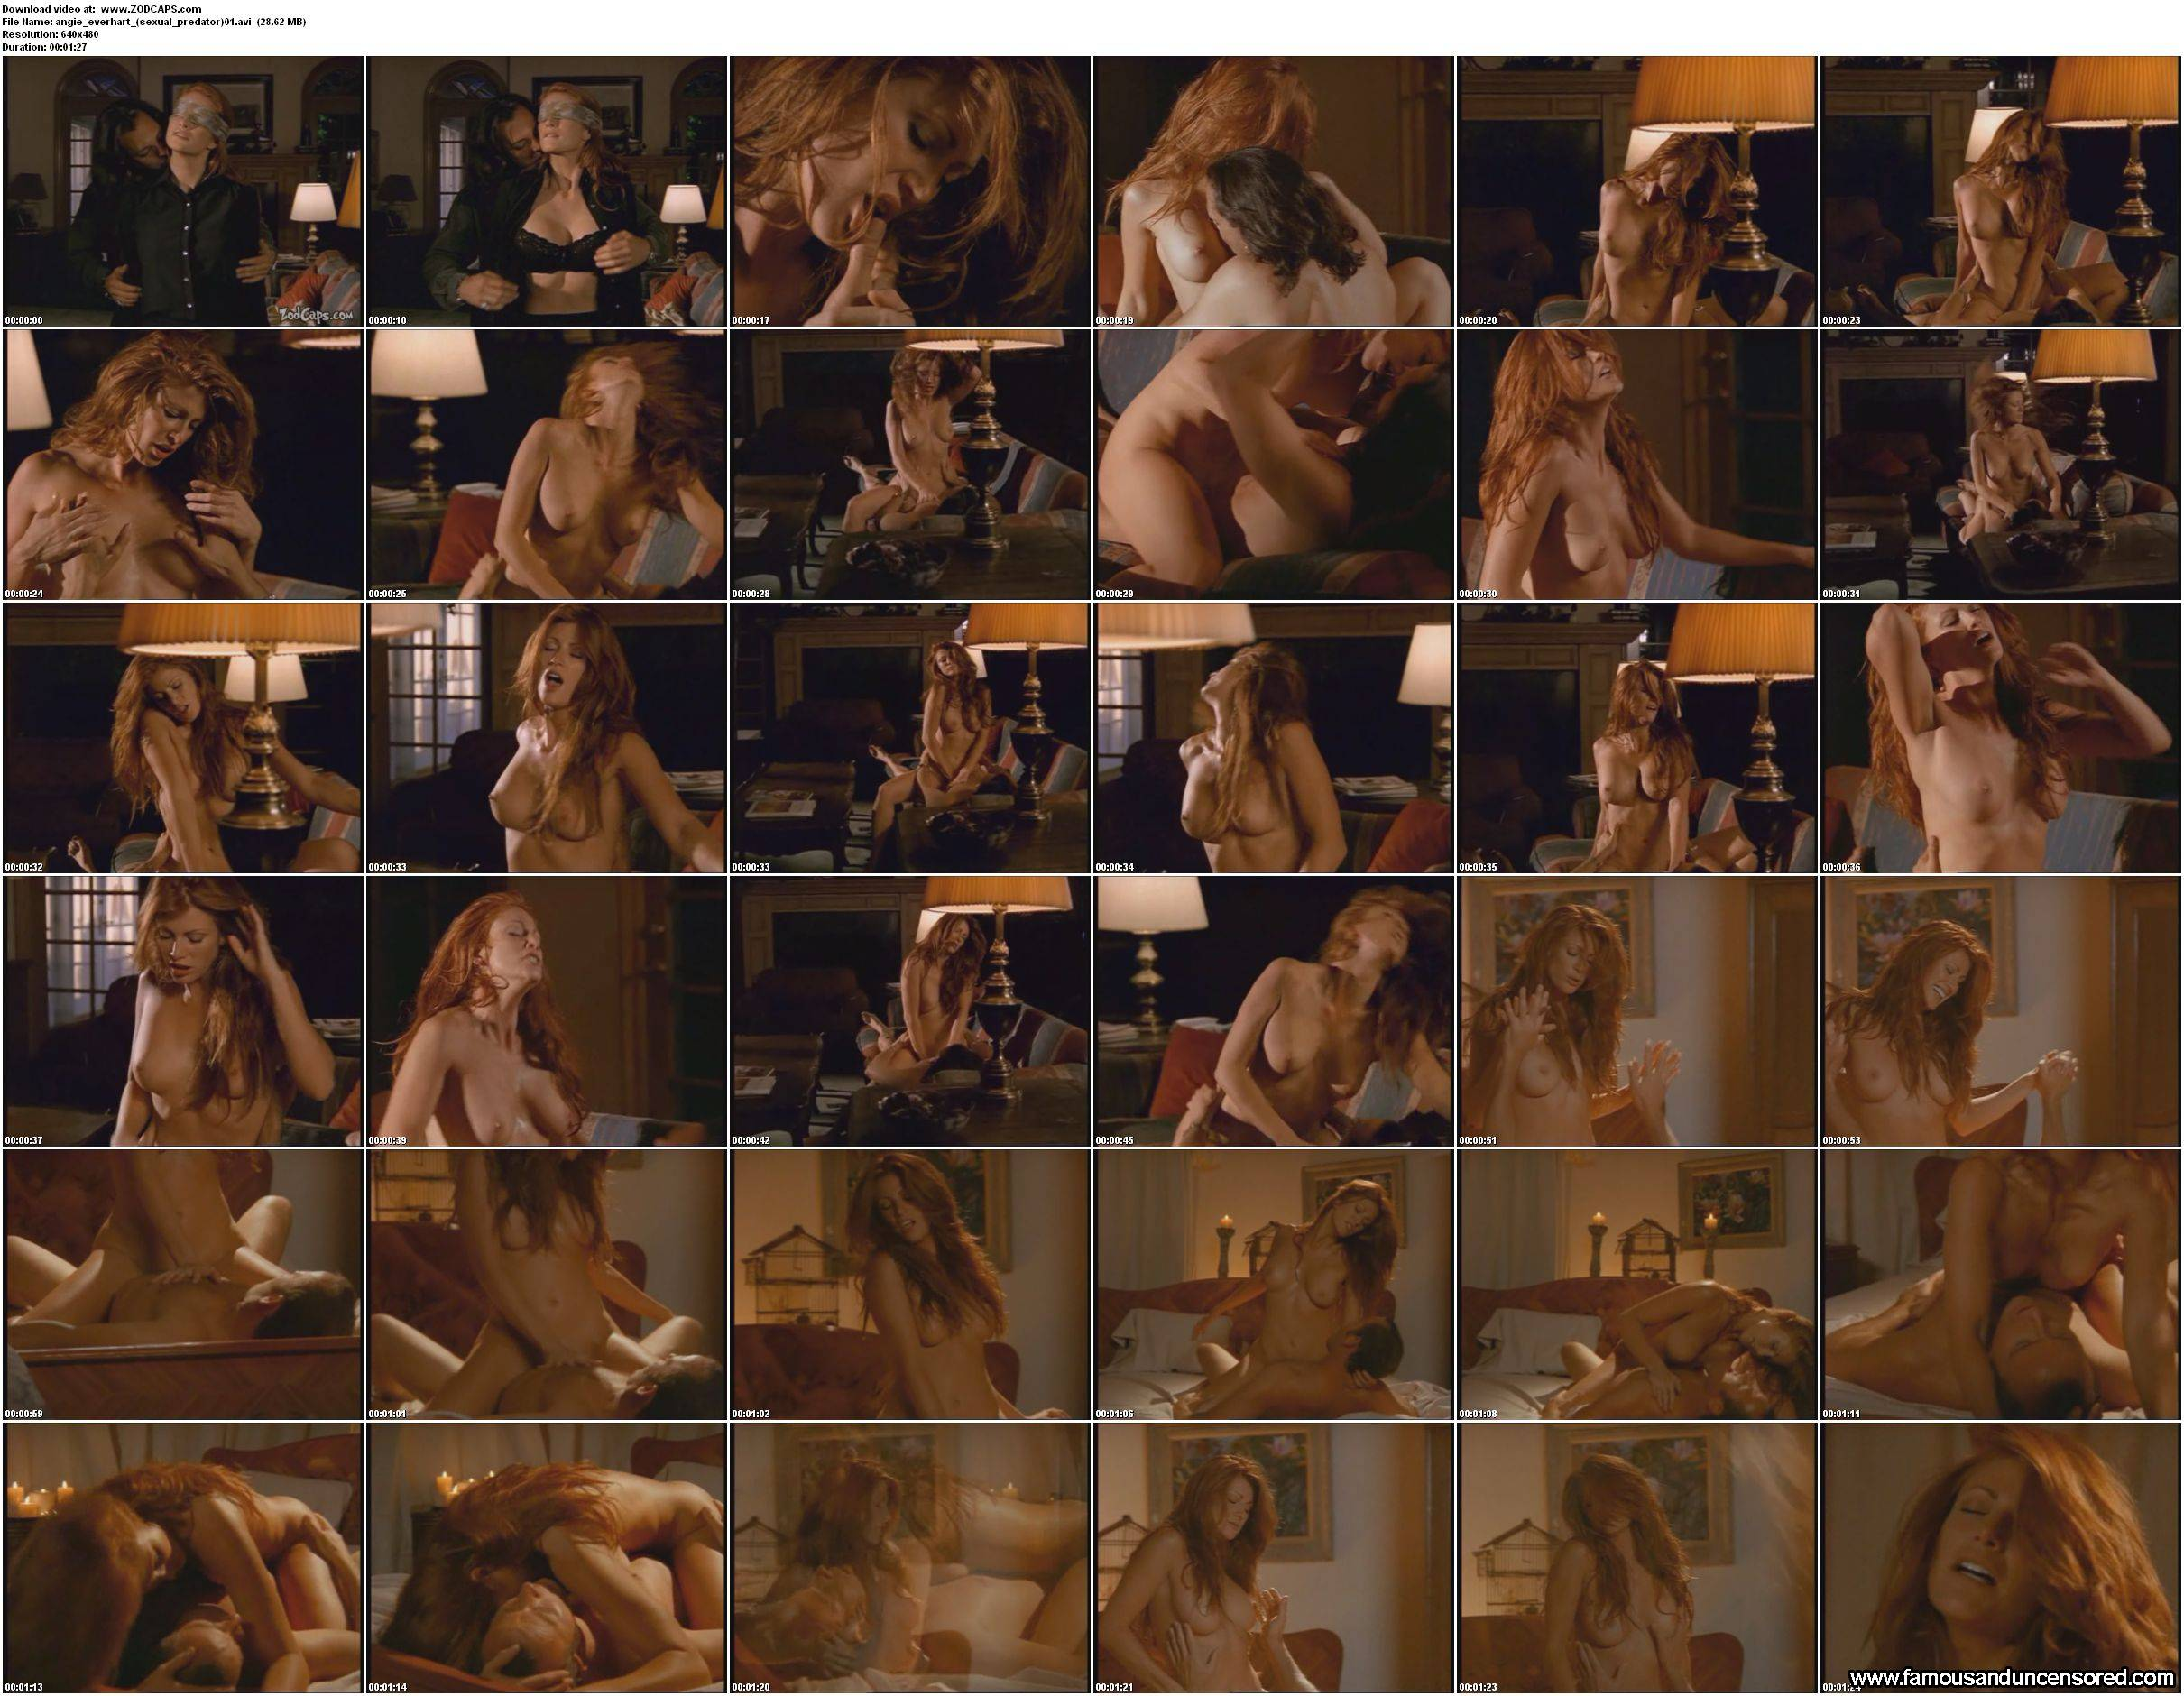 Angie Everhart Nude Sexy Scene in Sexual Predator Celebrity Photos and ...: www.famousanduncensored.com/nitrovideo.com/galleries2/9237-angie...